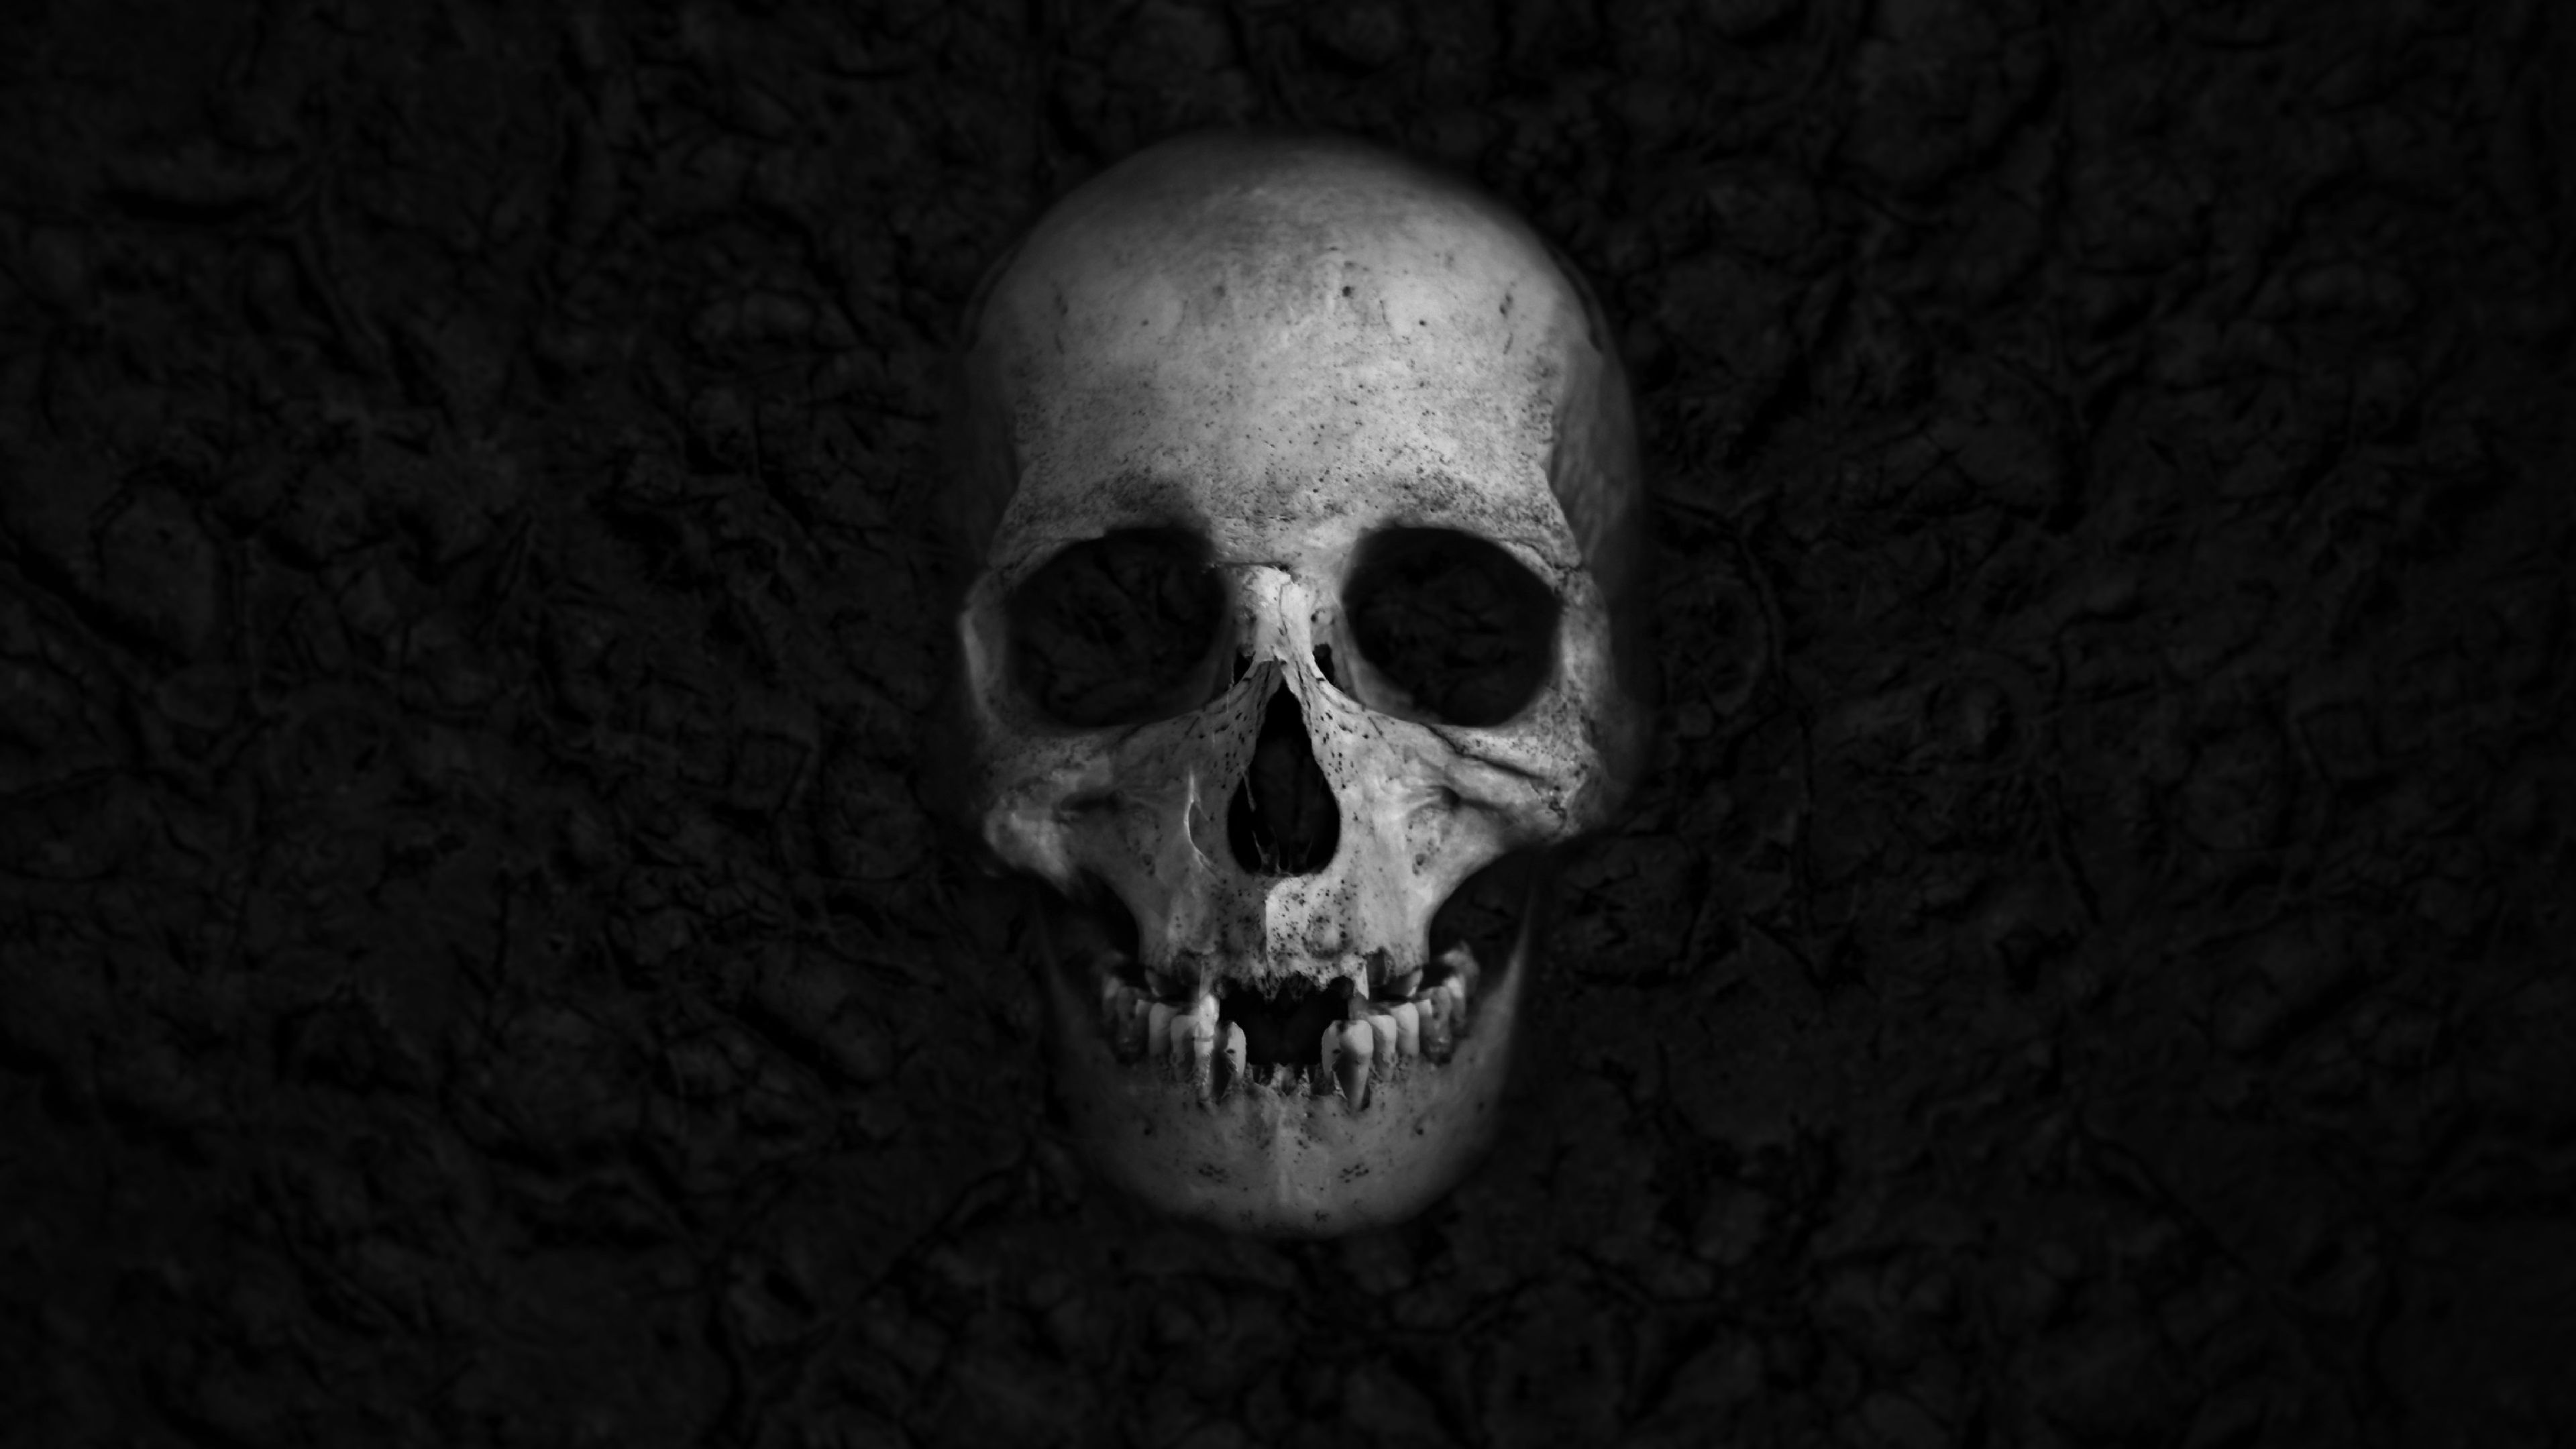 3840x2160 Skull 4k Wallpaper Most Downloaded In 2020 4k Wallpapers For Pc Skull Wallpaper Wallpaper Pc